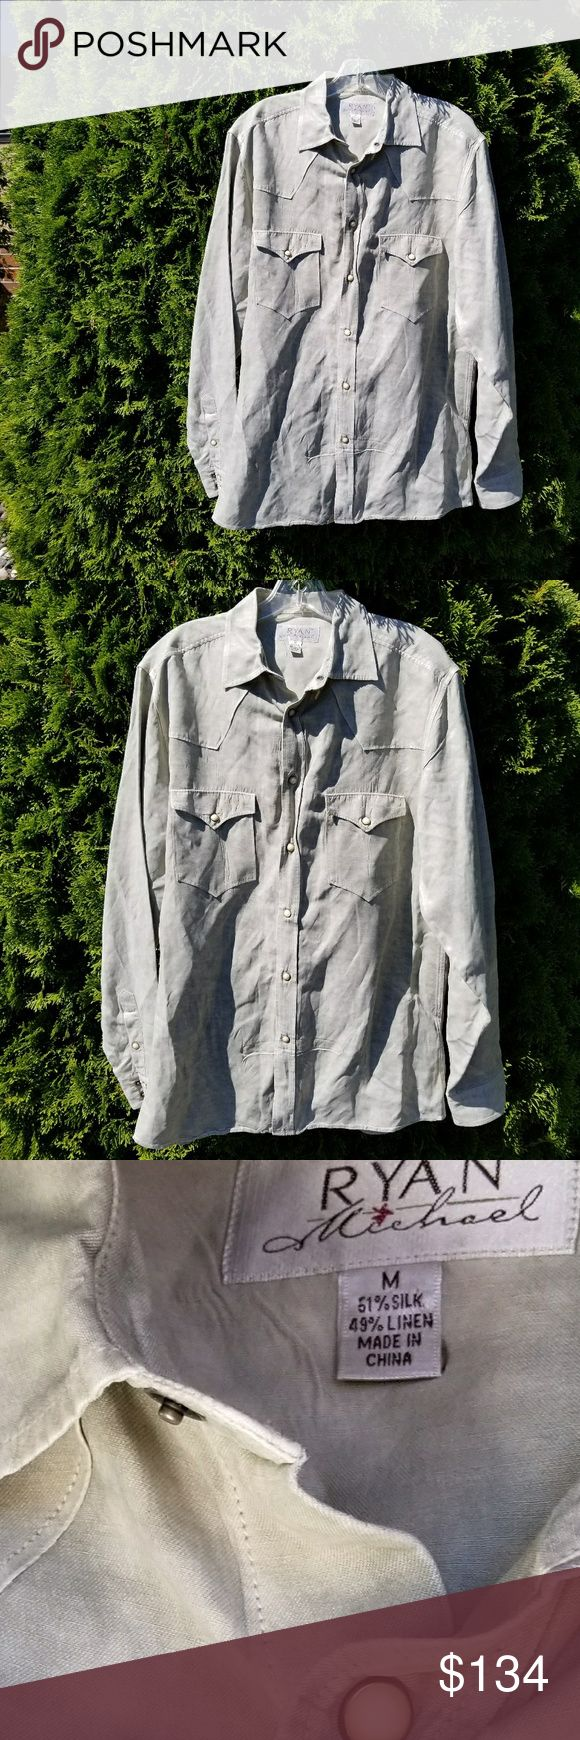 Ryan Michael Silk & Linen Pearl Snap Long Sleeve In excellent condition, palest olive green. Ryan Michael Shirts